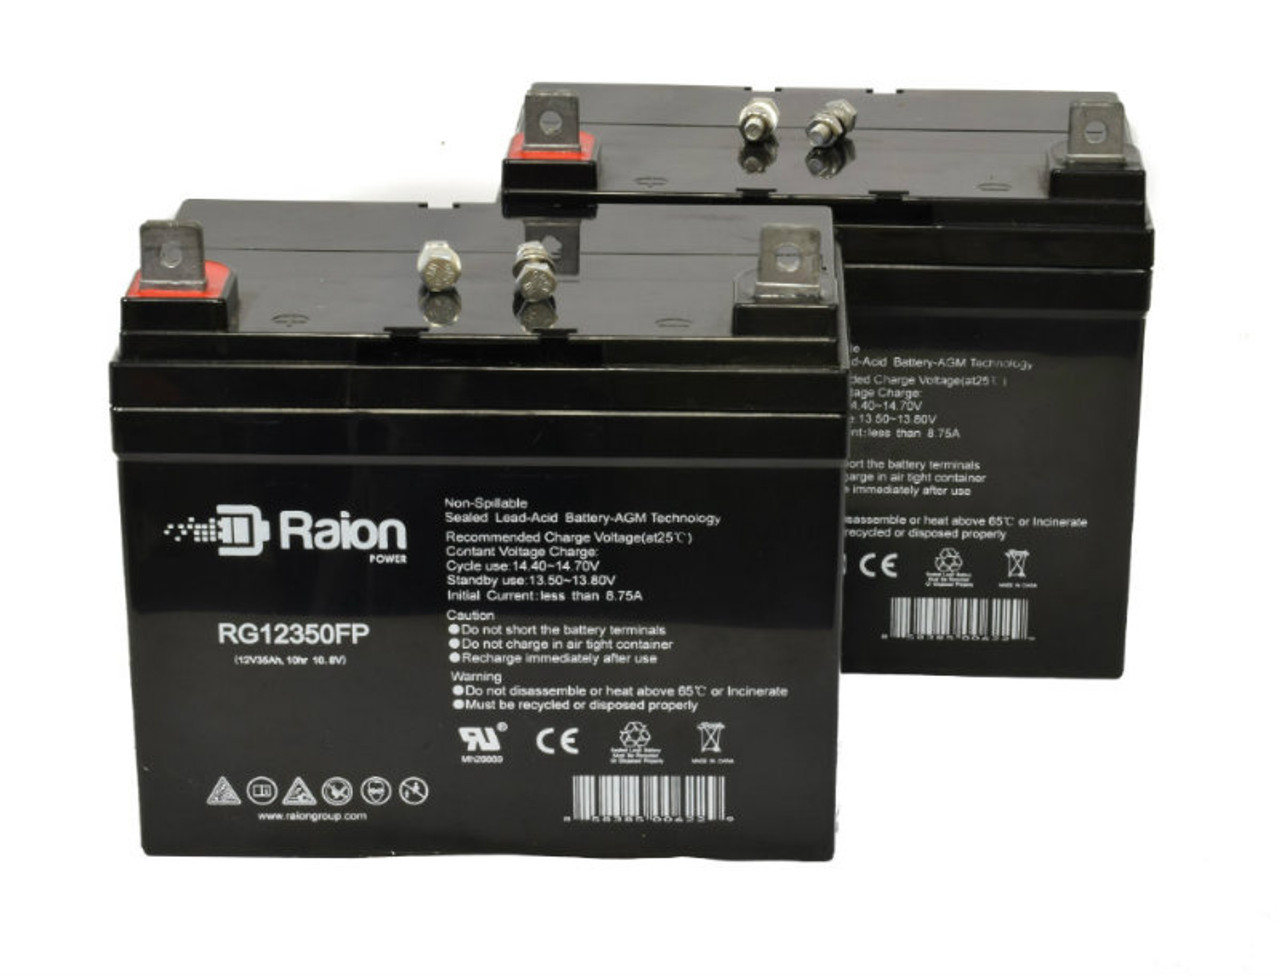 Raion Power RG12350FP Replacement Wheelchair Battery For IMC Heartway Rumba HP3HD U1 (2 Pack)